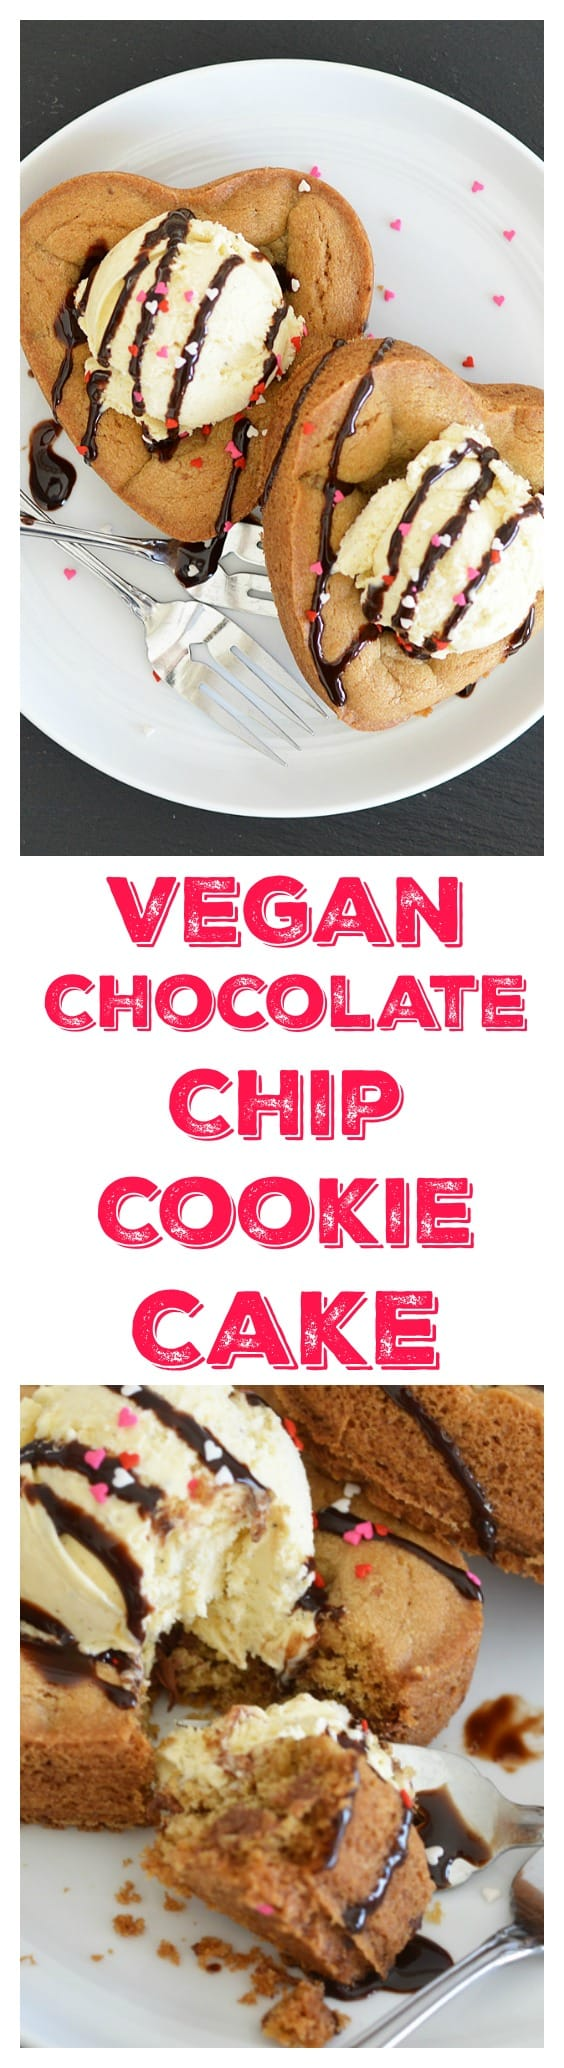 Vegan Chocolate Chip Cookie Cake